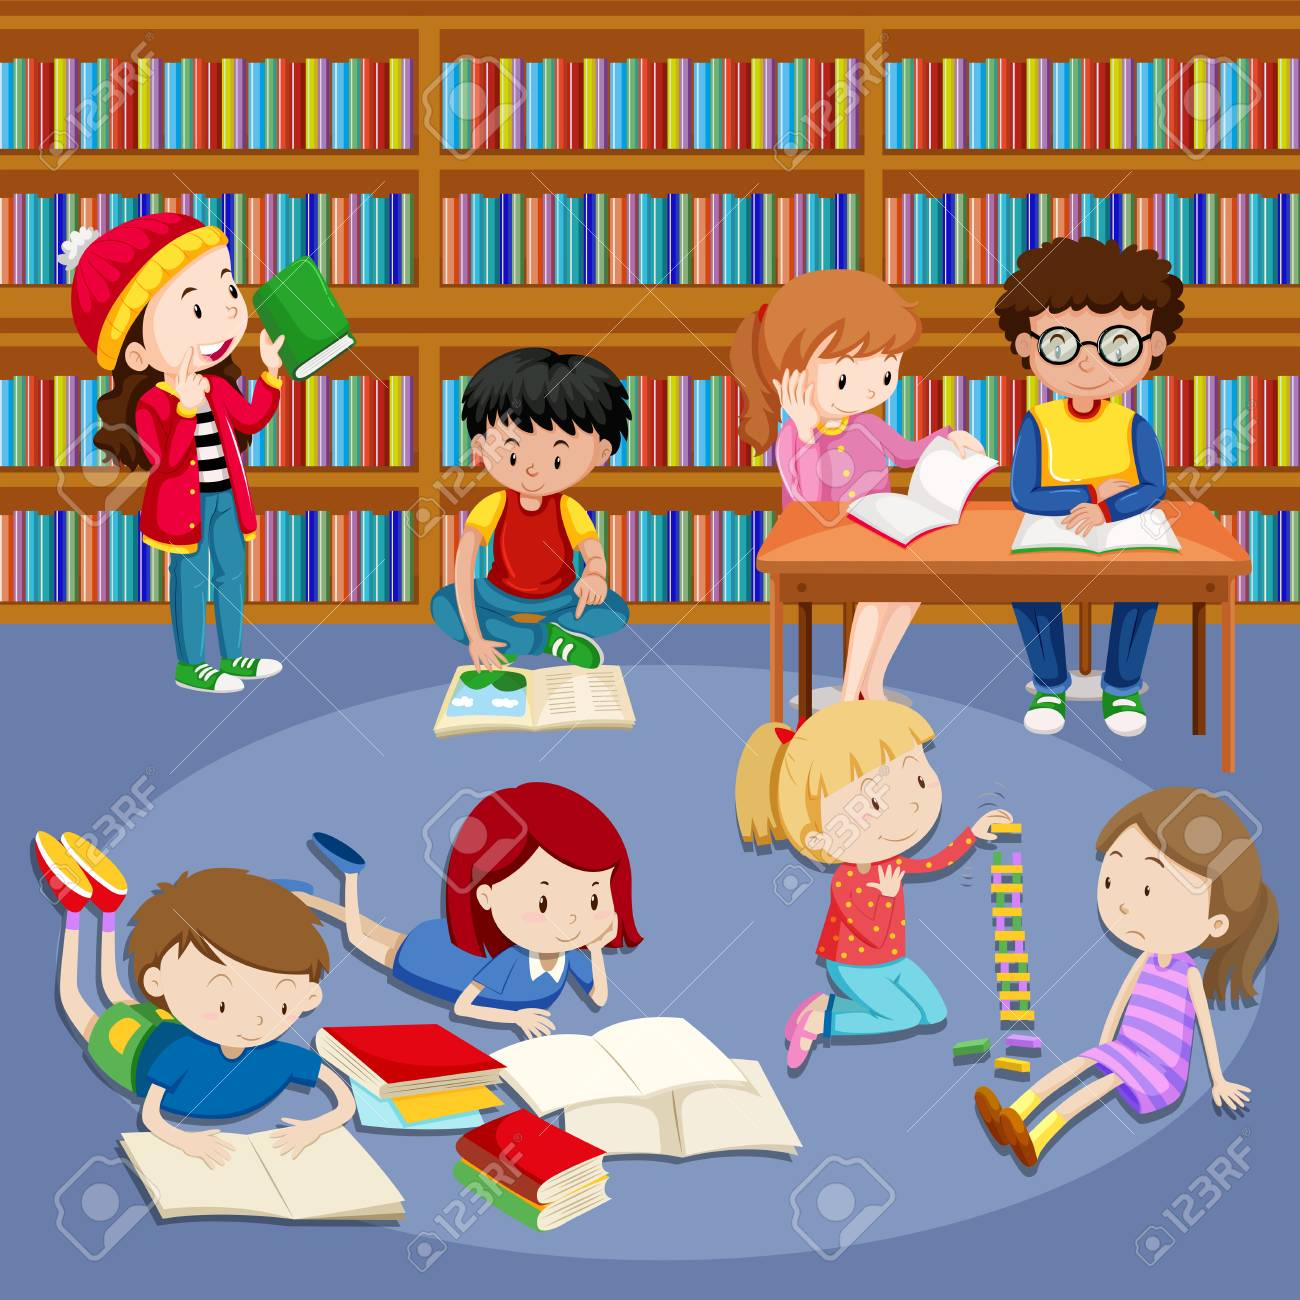 Many Kids Reading Books In Library Illustration Royalty Free Cliparts Vectors And Stock Illustration Image 96112489